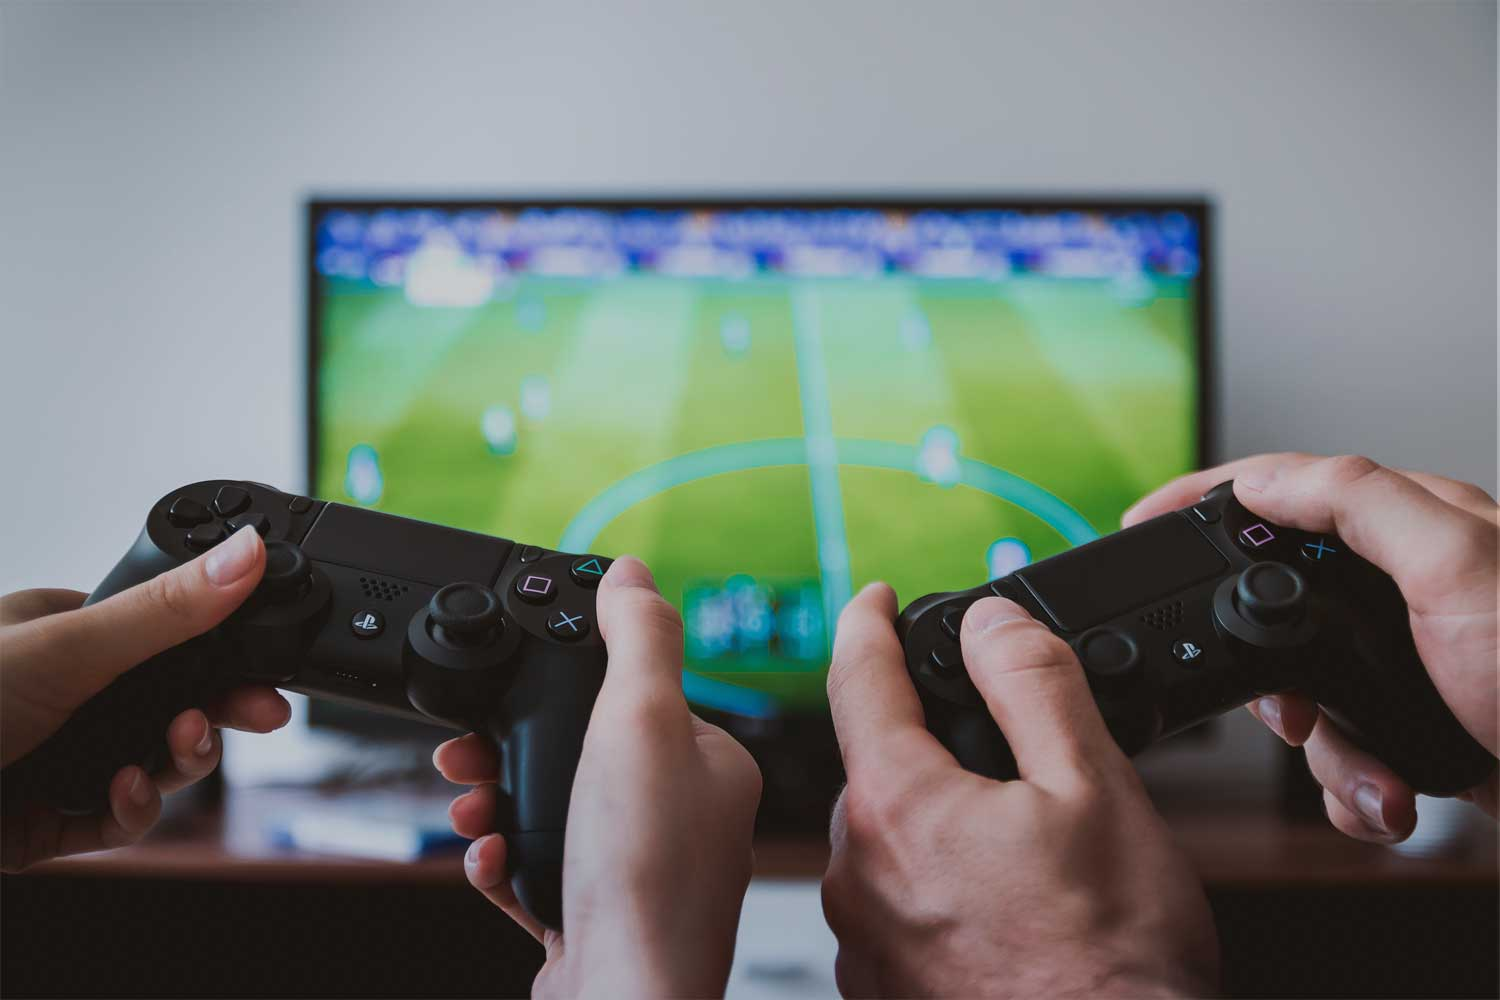 Two gaming controls infant of FIFA